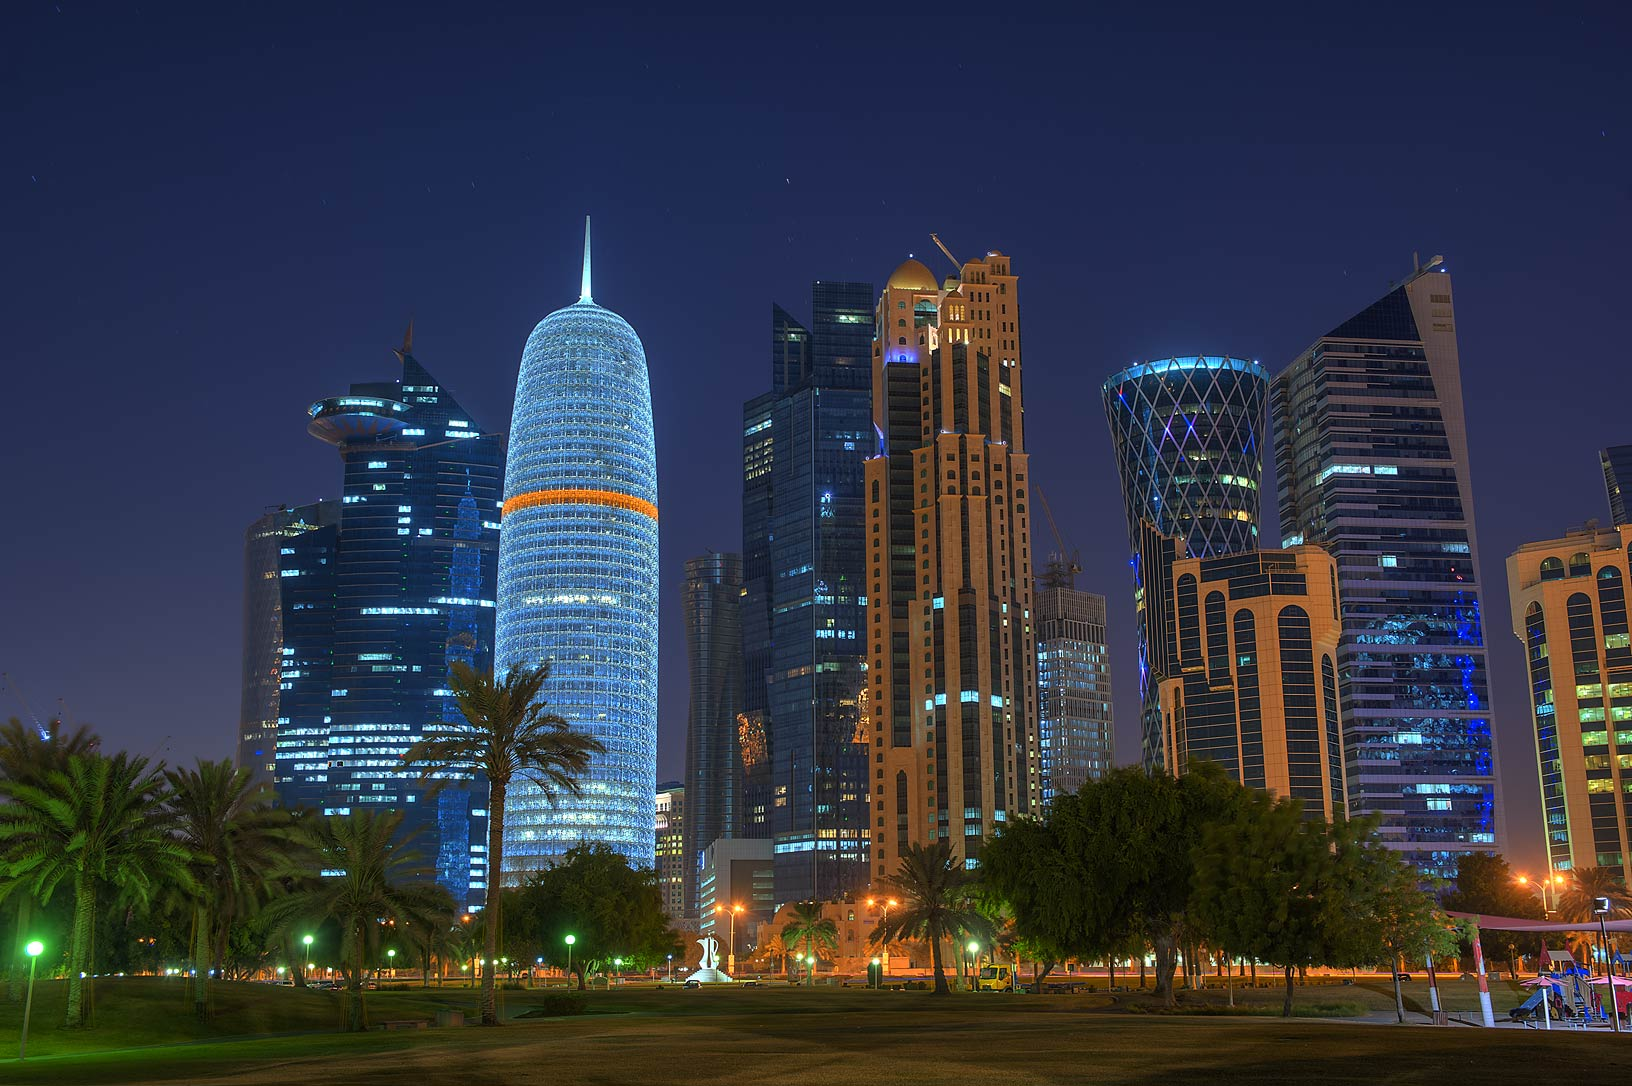 Lights of Burj Qatar Tower in West Bay from Sheraton Park on Corniche. Doha, Qatar